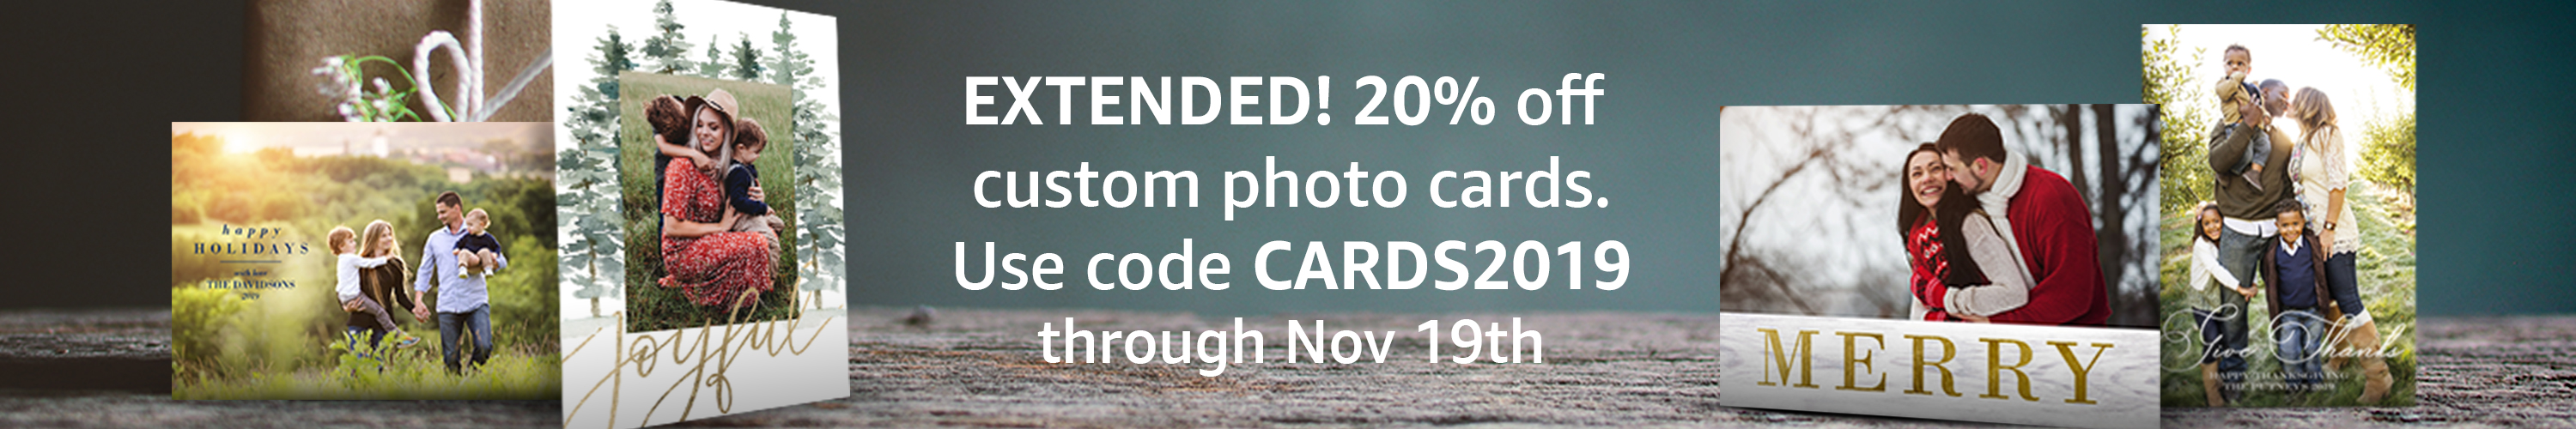 Holiday Cards Pre-Sale   20% off Photo Cards with code: CARDS2019